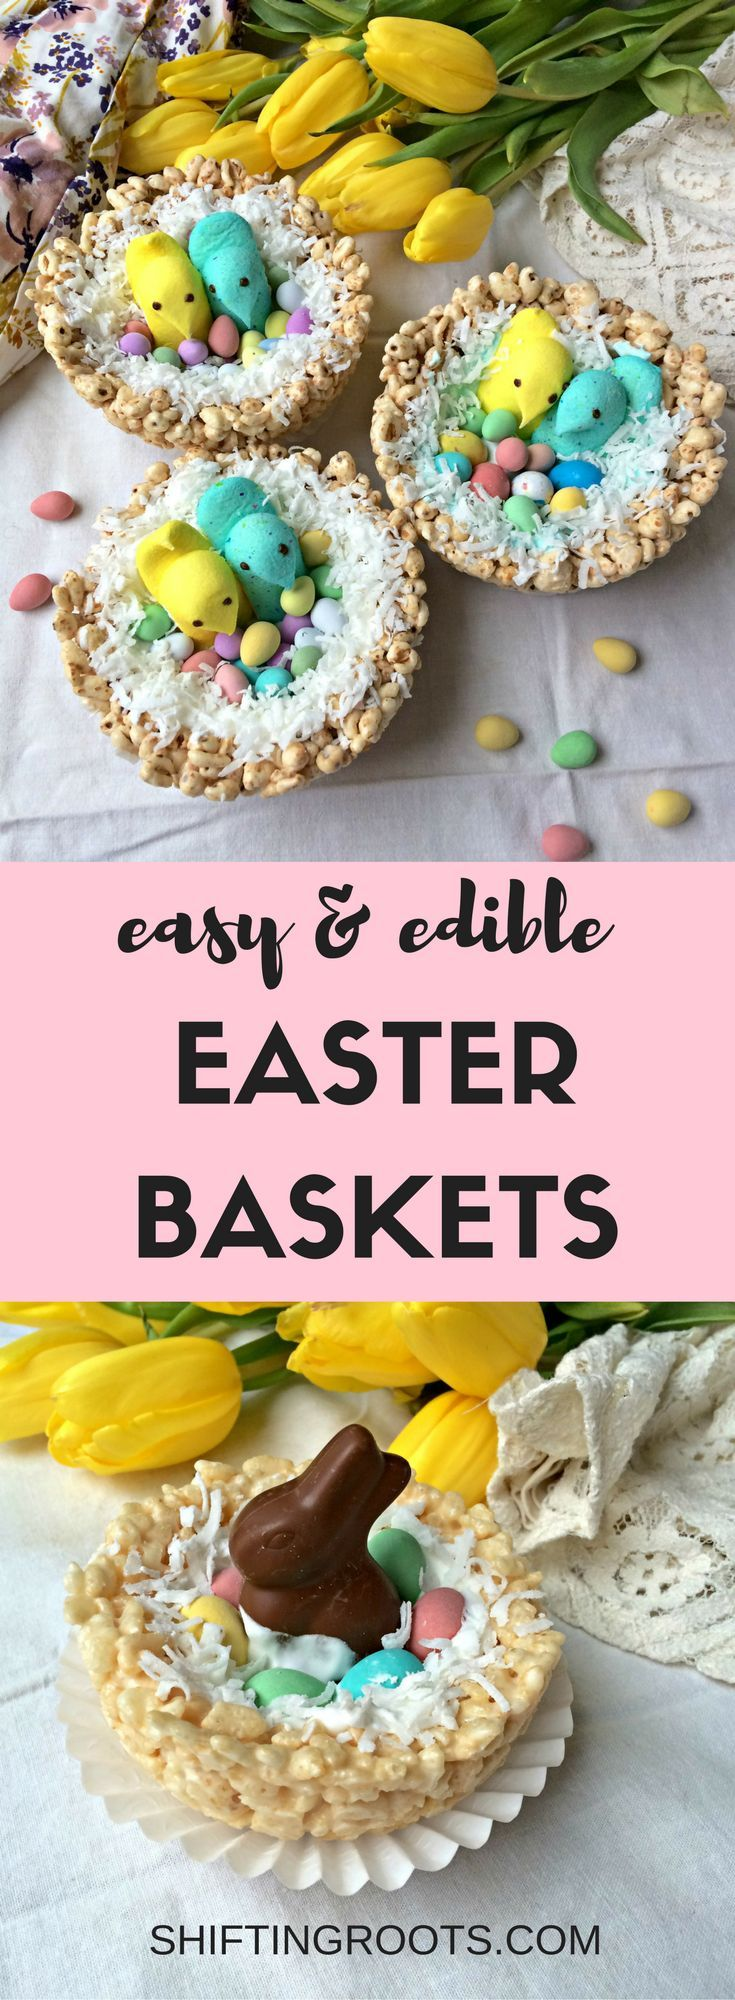 The 25 best easter baskets ideas on pinterest easter ideas check out this creative diy easter basket tutorial everything is completely edible make negle Choice Image